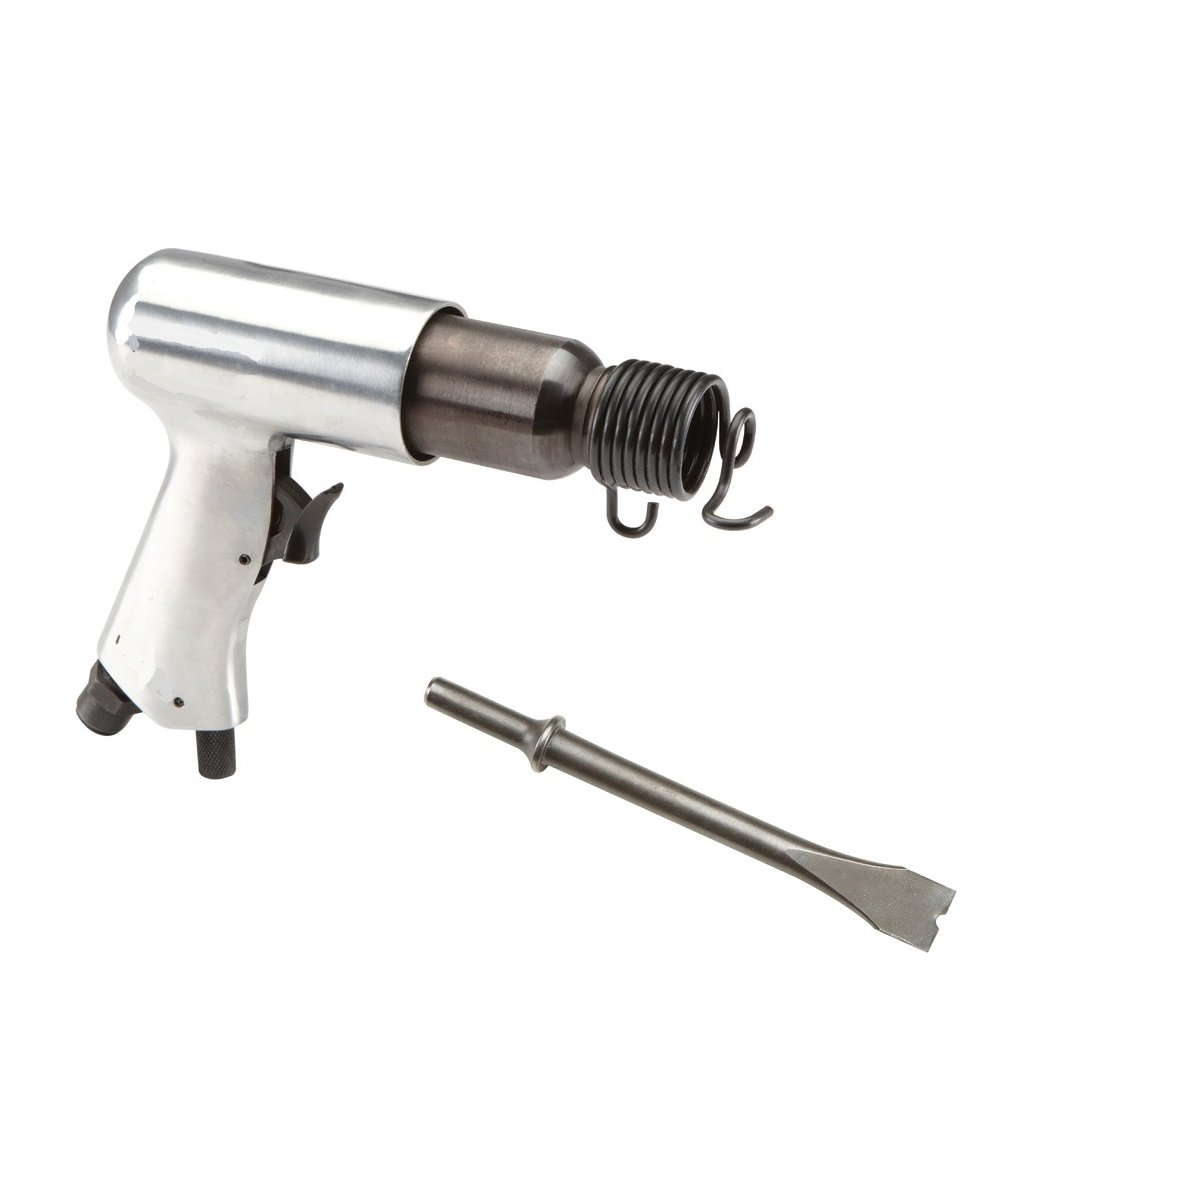 New Die Cast Aluminum Air Impact Hammer Built-In air Regulator (Medium Barrel) ideal for Cutting Metal Remove Fastener Heads Bolts Auto Cars Trucks SUV Engine Mechanic Works (comes with chisel)